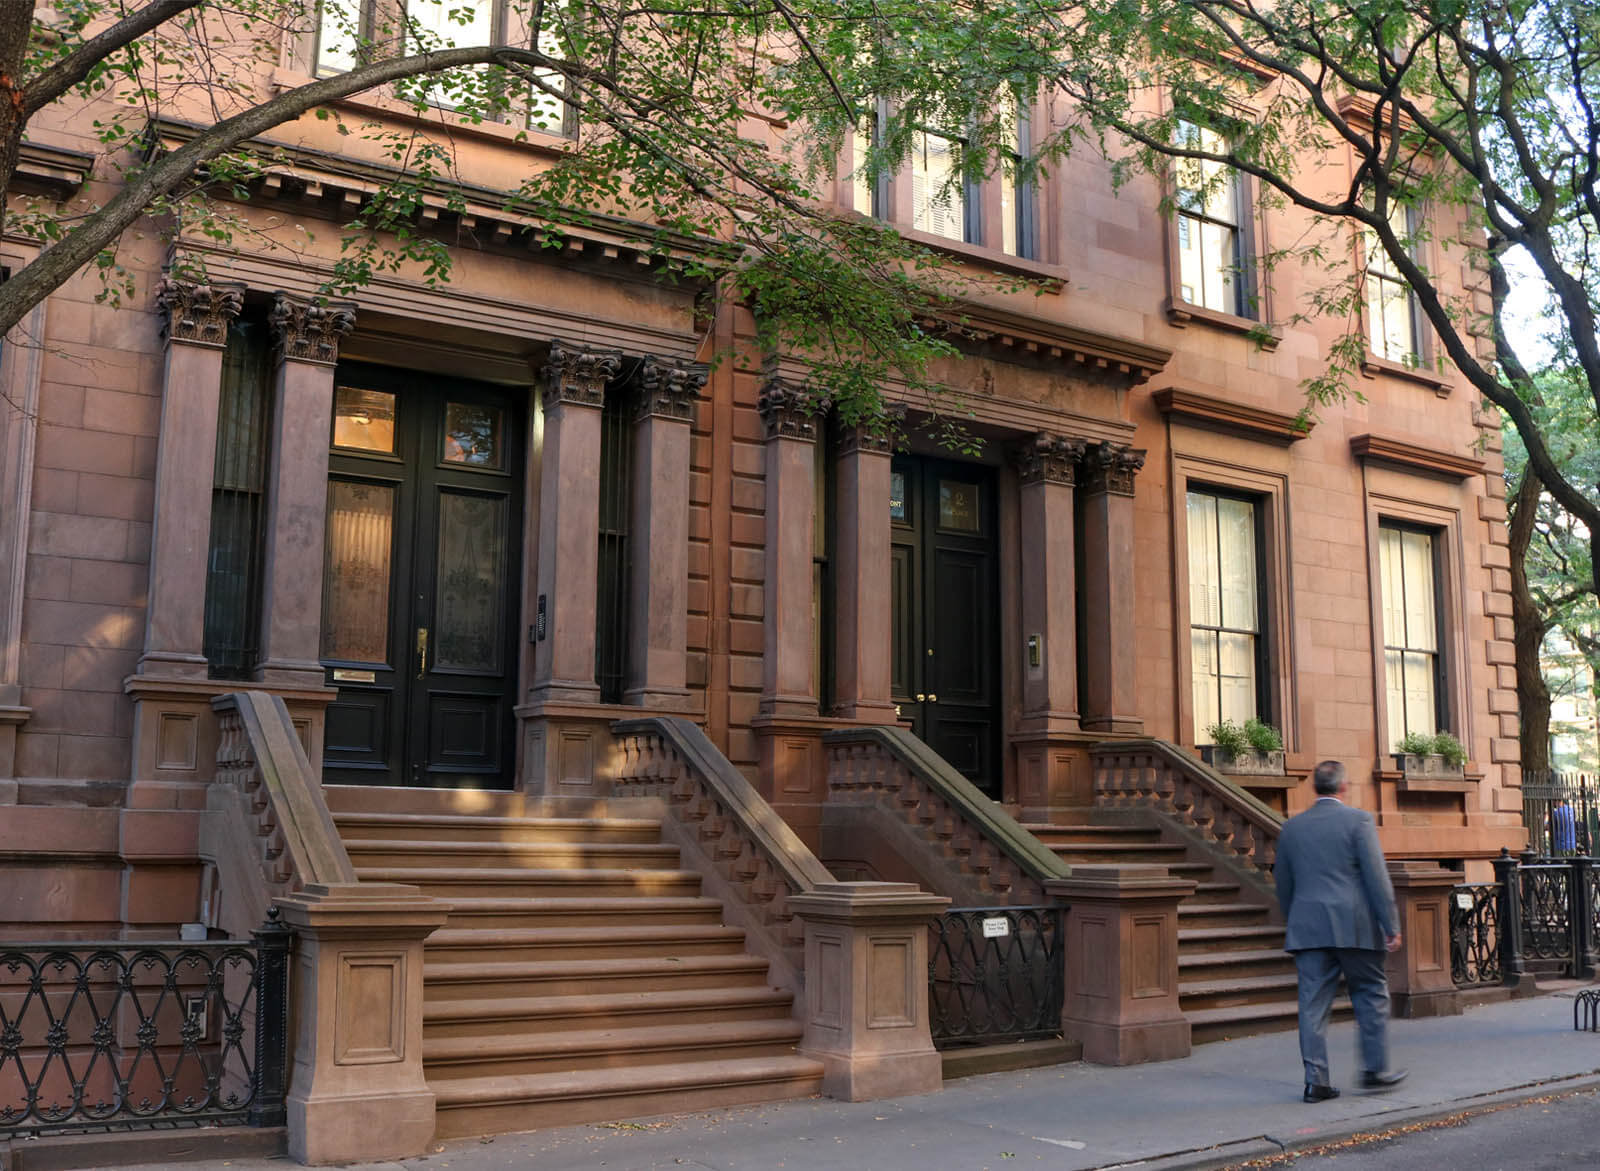 brownstone brooklyn architecture charles lockwood pierrepont place